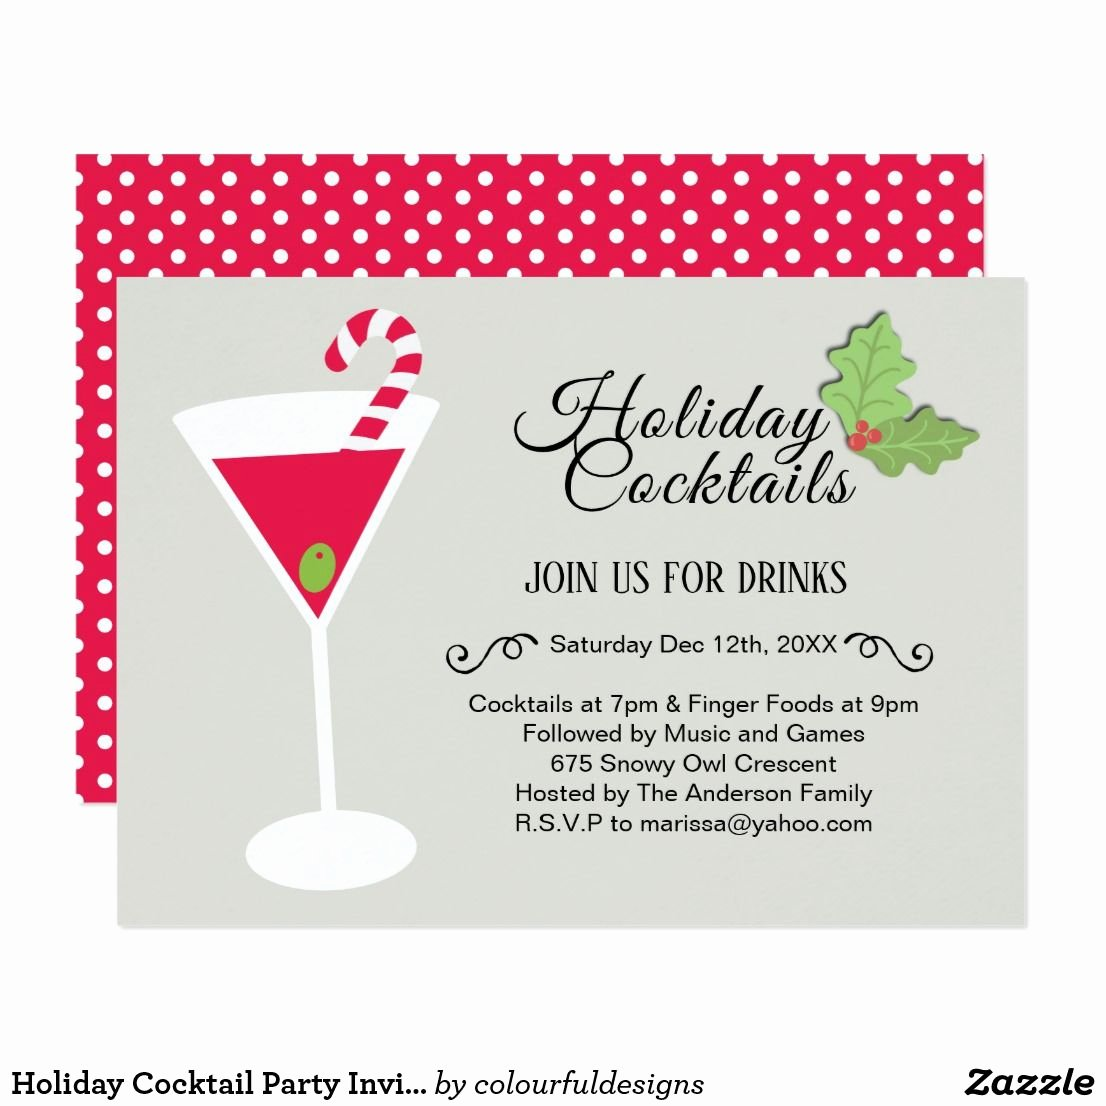 Cocktail Party Invitation Template Luxury Babcbbeadcdebbca Stunning Holiday Cocktail Party